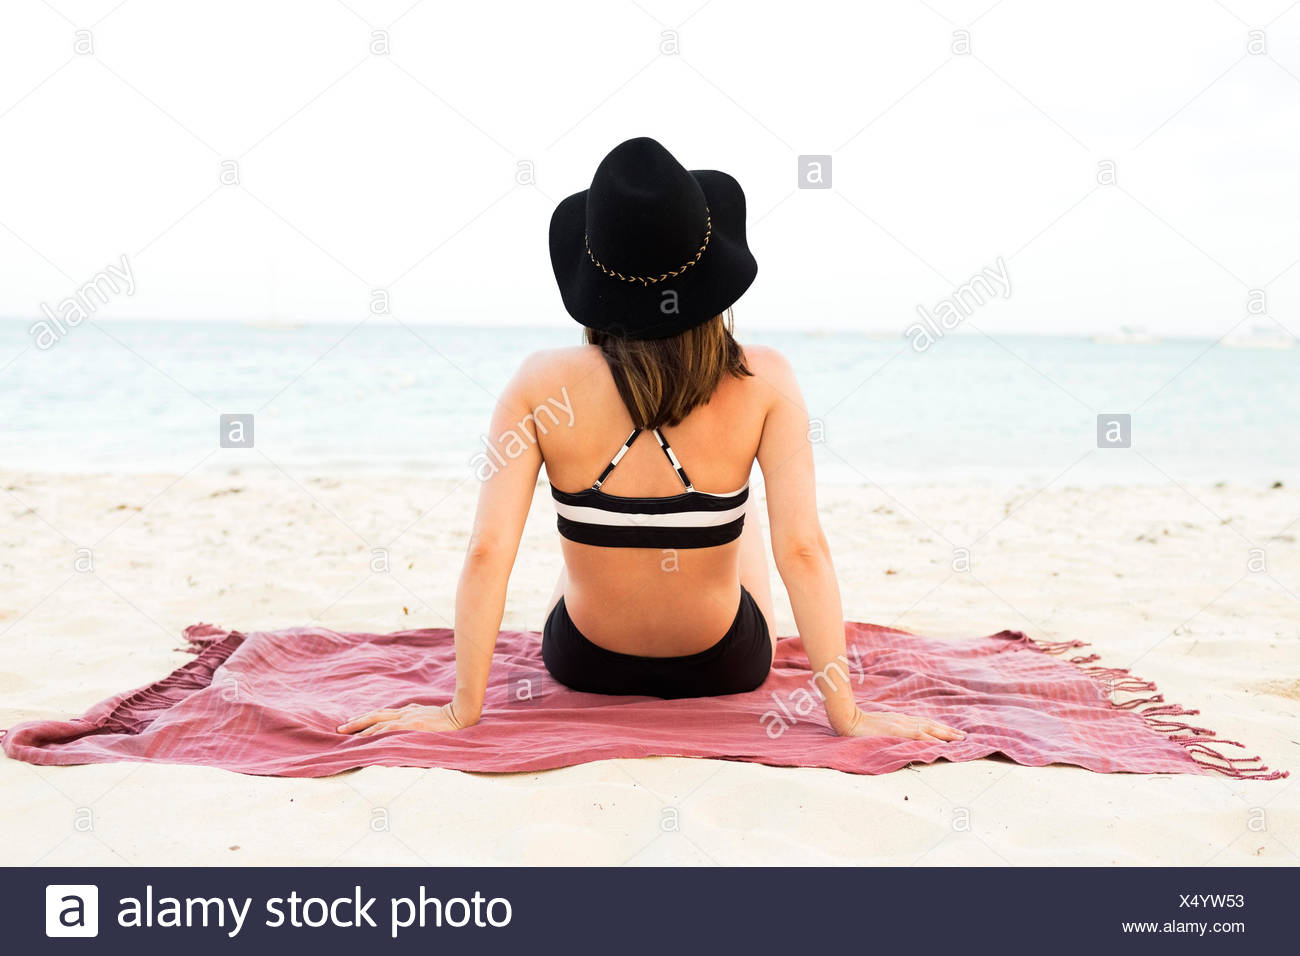 Woman in bikini relaxing on beach - Stock Image